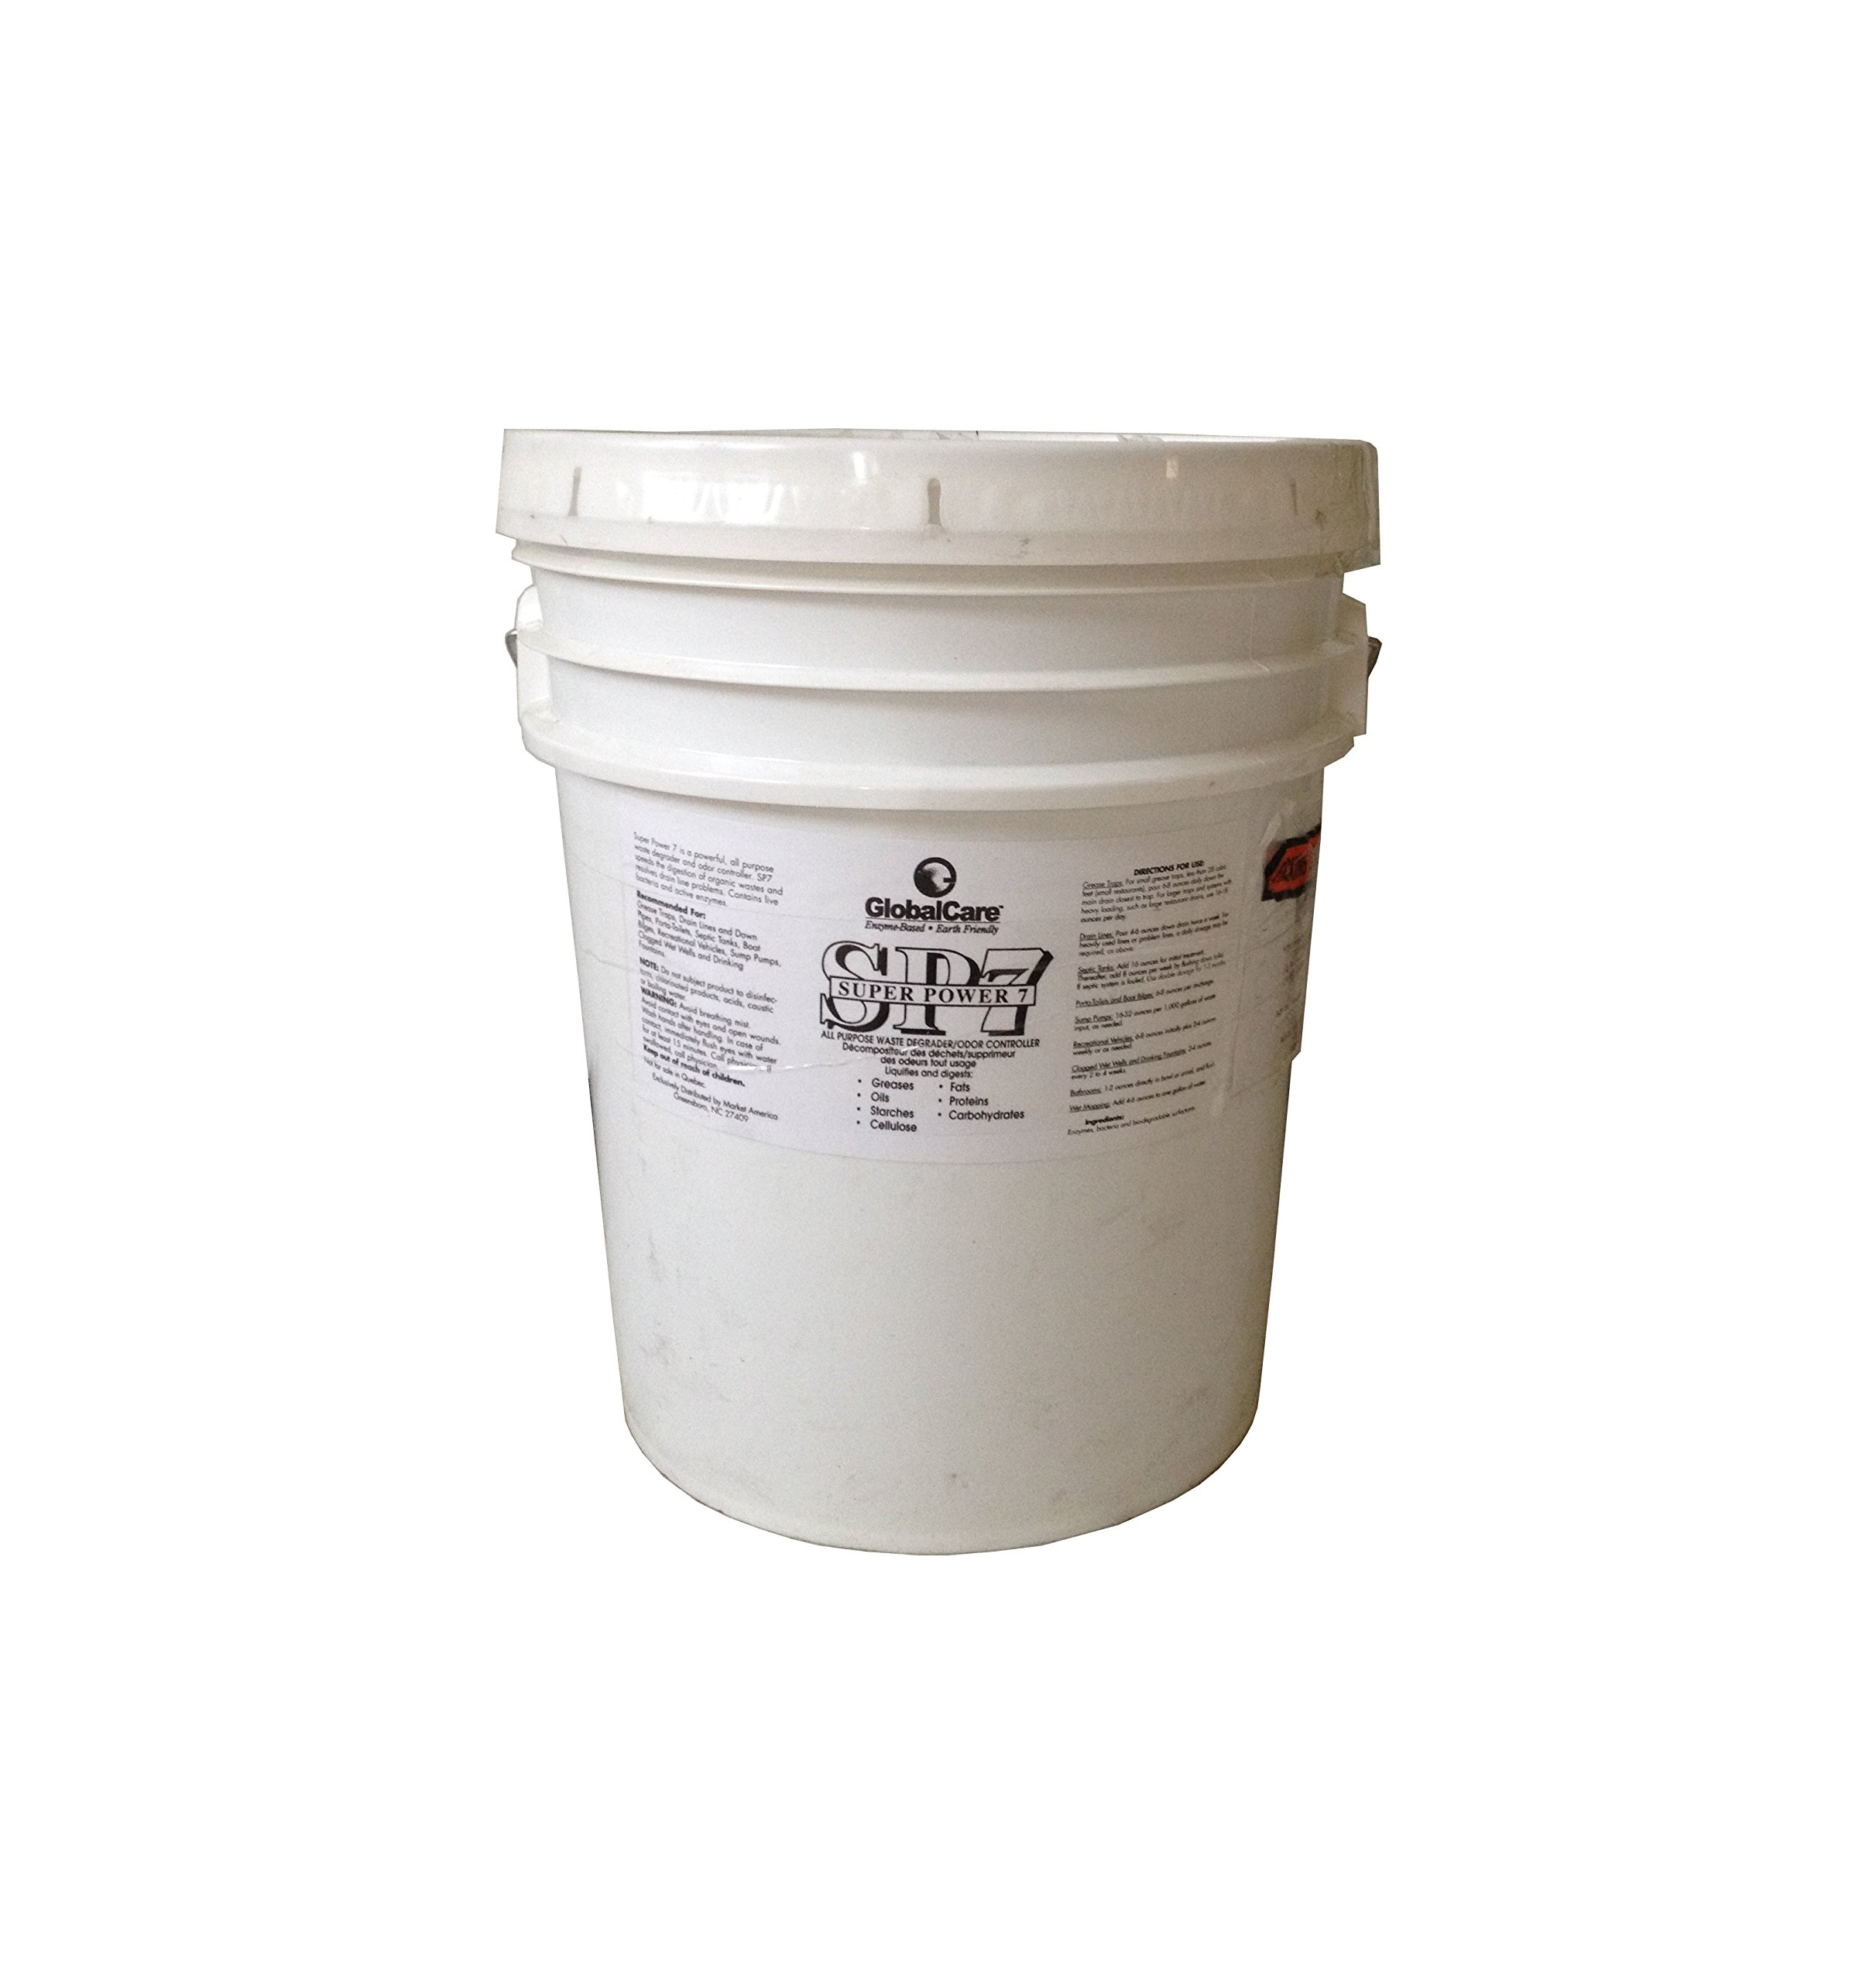 SP7 All-Purpose Degrader & Odor Controller - Super Power 7 (SP7) is an industrial strength organic waste degrader and odor eliminator, GlobalCare produced, containing harmless active enzymes and safe live bacteria that breakdown and liquefy the organic wa